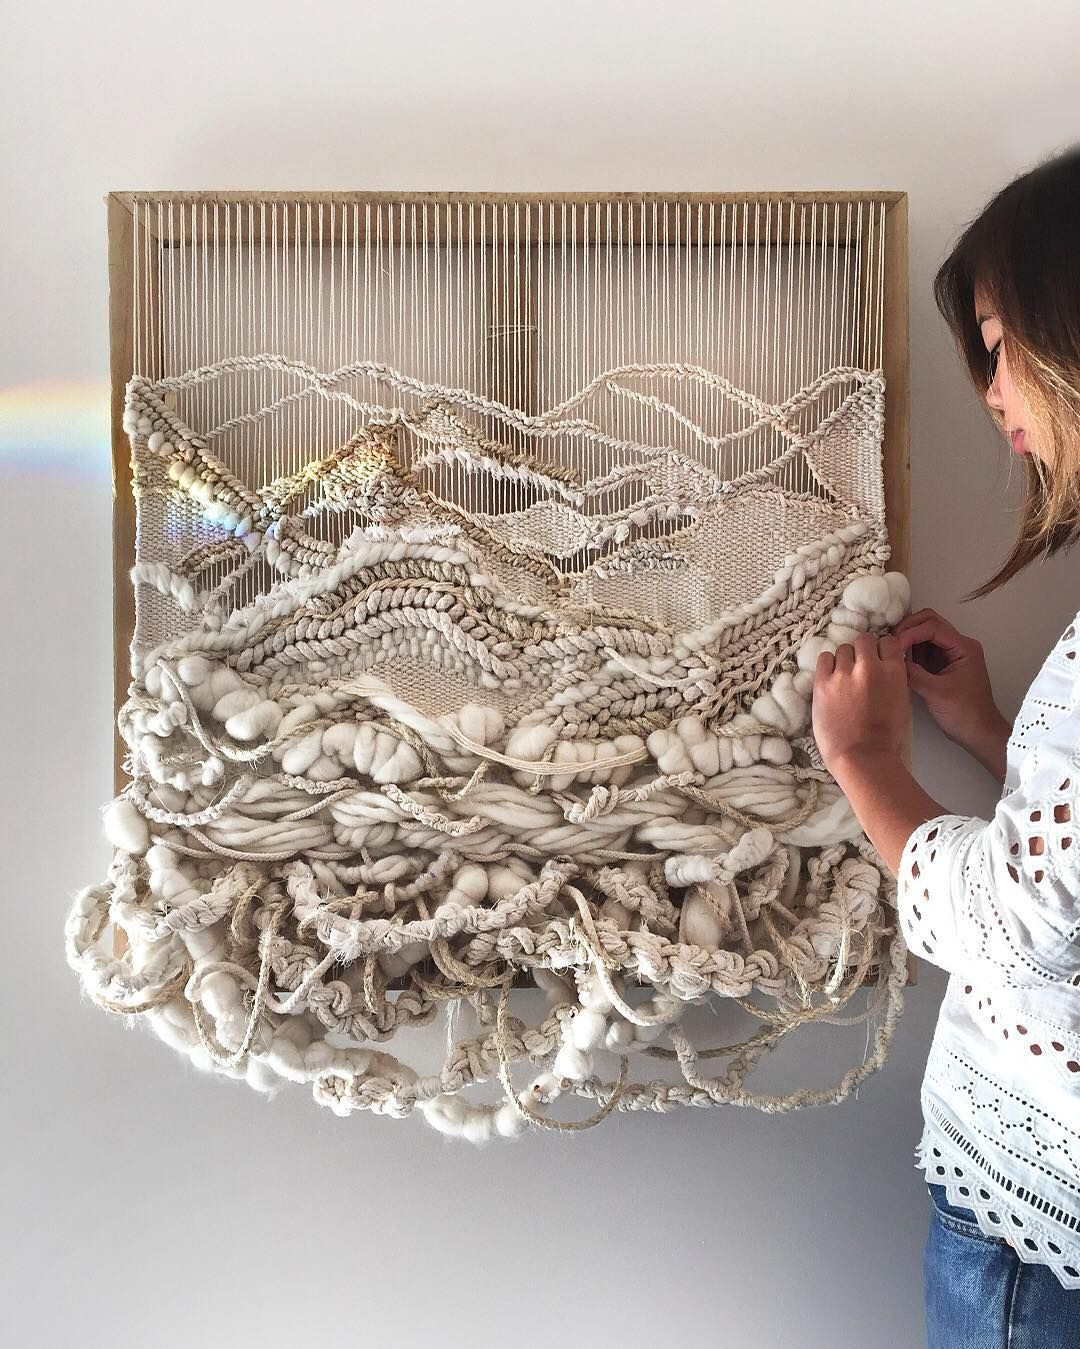 Crossing Threads Handwoven Fibre Art By Sisters Lauren